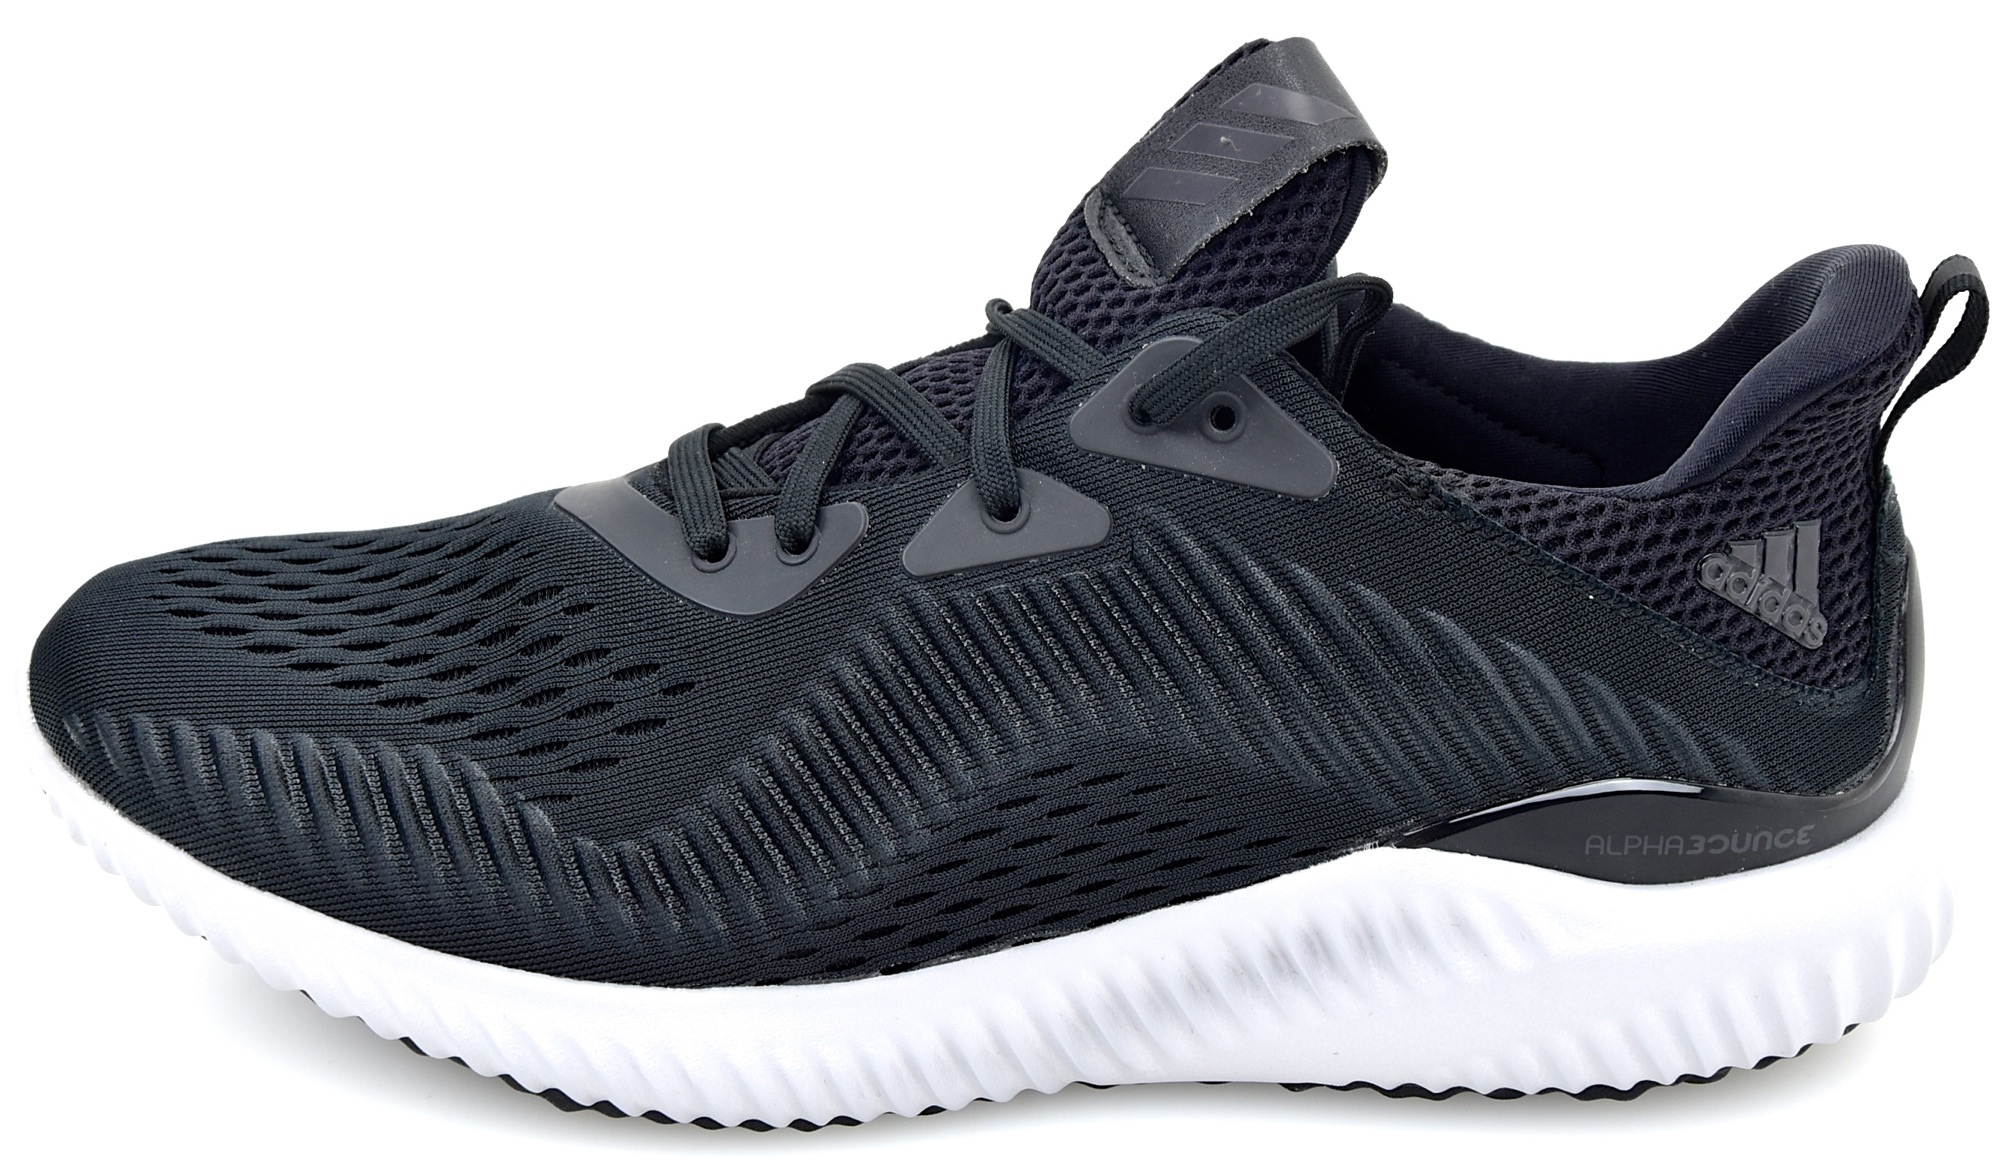 660d409a4def Details about ADIDAS MAN SPORTS SNEAKER RUNNING SHOES FREE TIME CODE BY4264  ALPHABOUNCE EM M